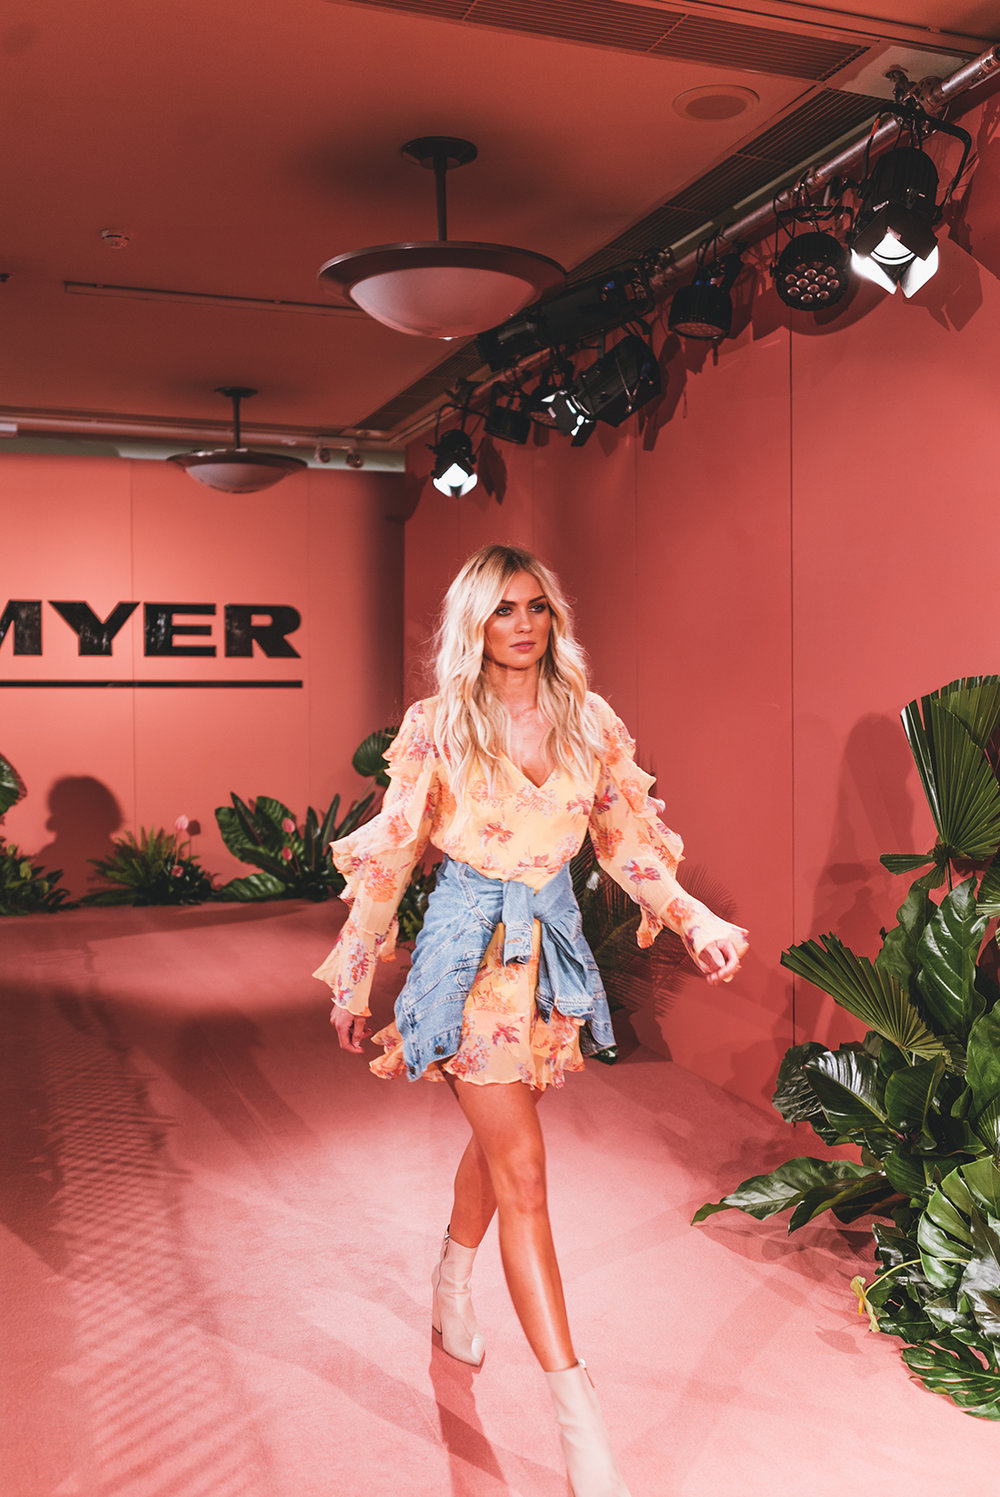 ELYSE KNOWLES - MYER SERIES 2018 3.jpg